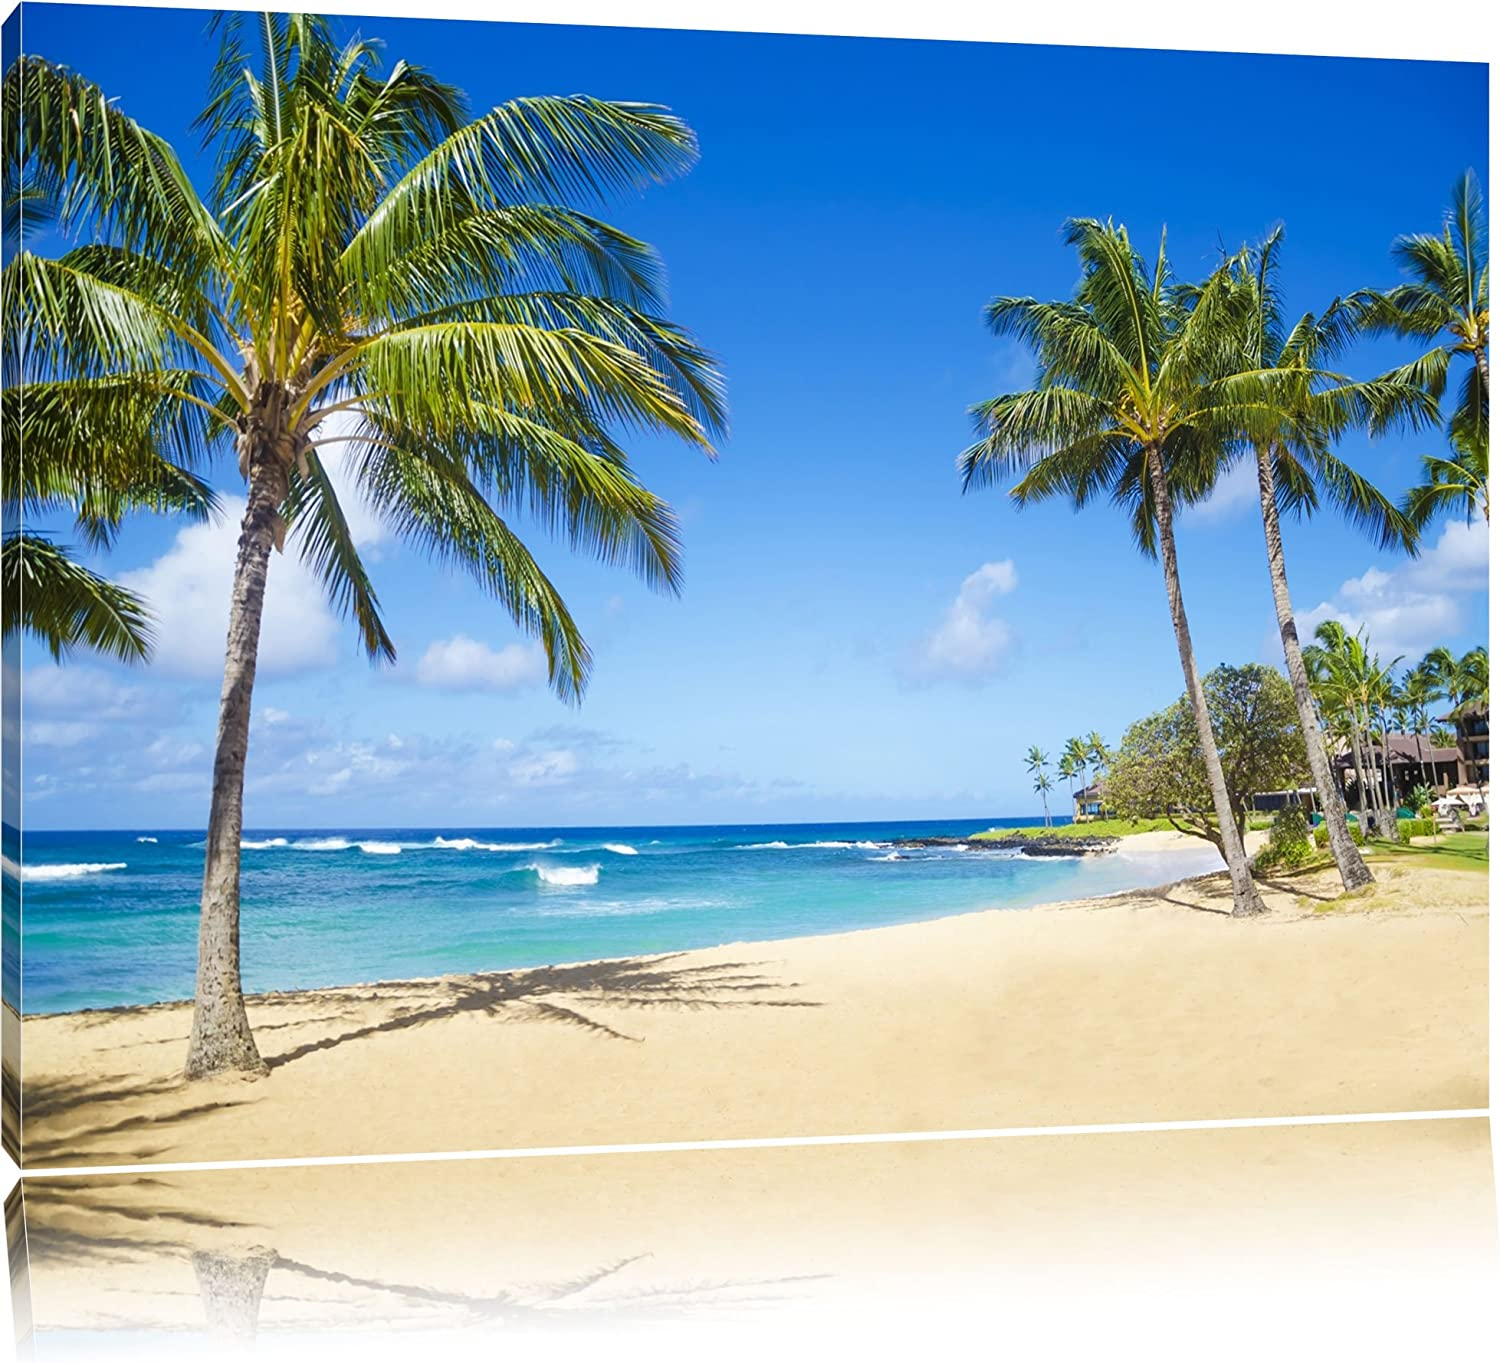 Beautiful Beach With Palm Trees Canvas Xxl Huge Pictures Completely Framed With Stretcher Art Print On Wall Picture With Frame Cheaper Than Oil Paintings And Picture No Poster Or Poster Size 100x70